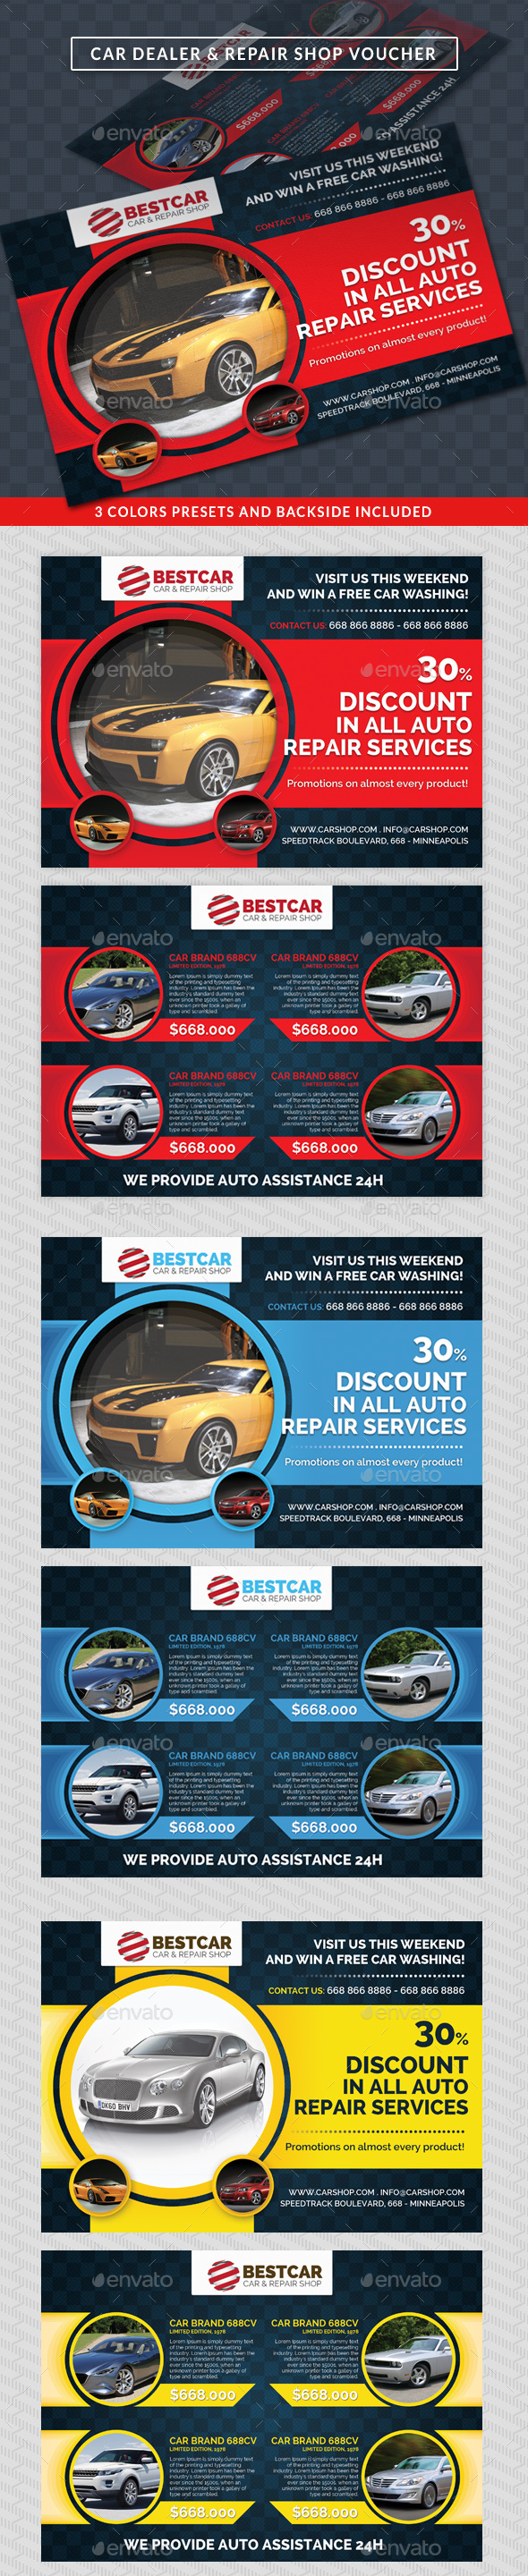 Car Dealer & Auto Services Commerce Discount Voucher - Cards & Invites Print Templates